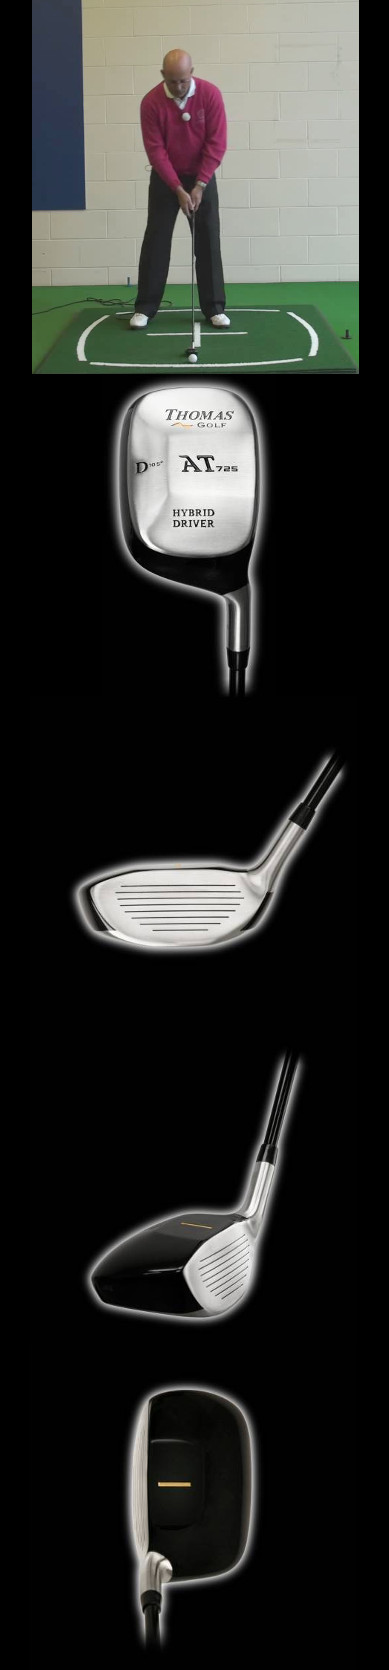 3 Good Reasons To Add Senior Hybrid Golf Clubs To Your Bag